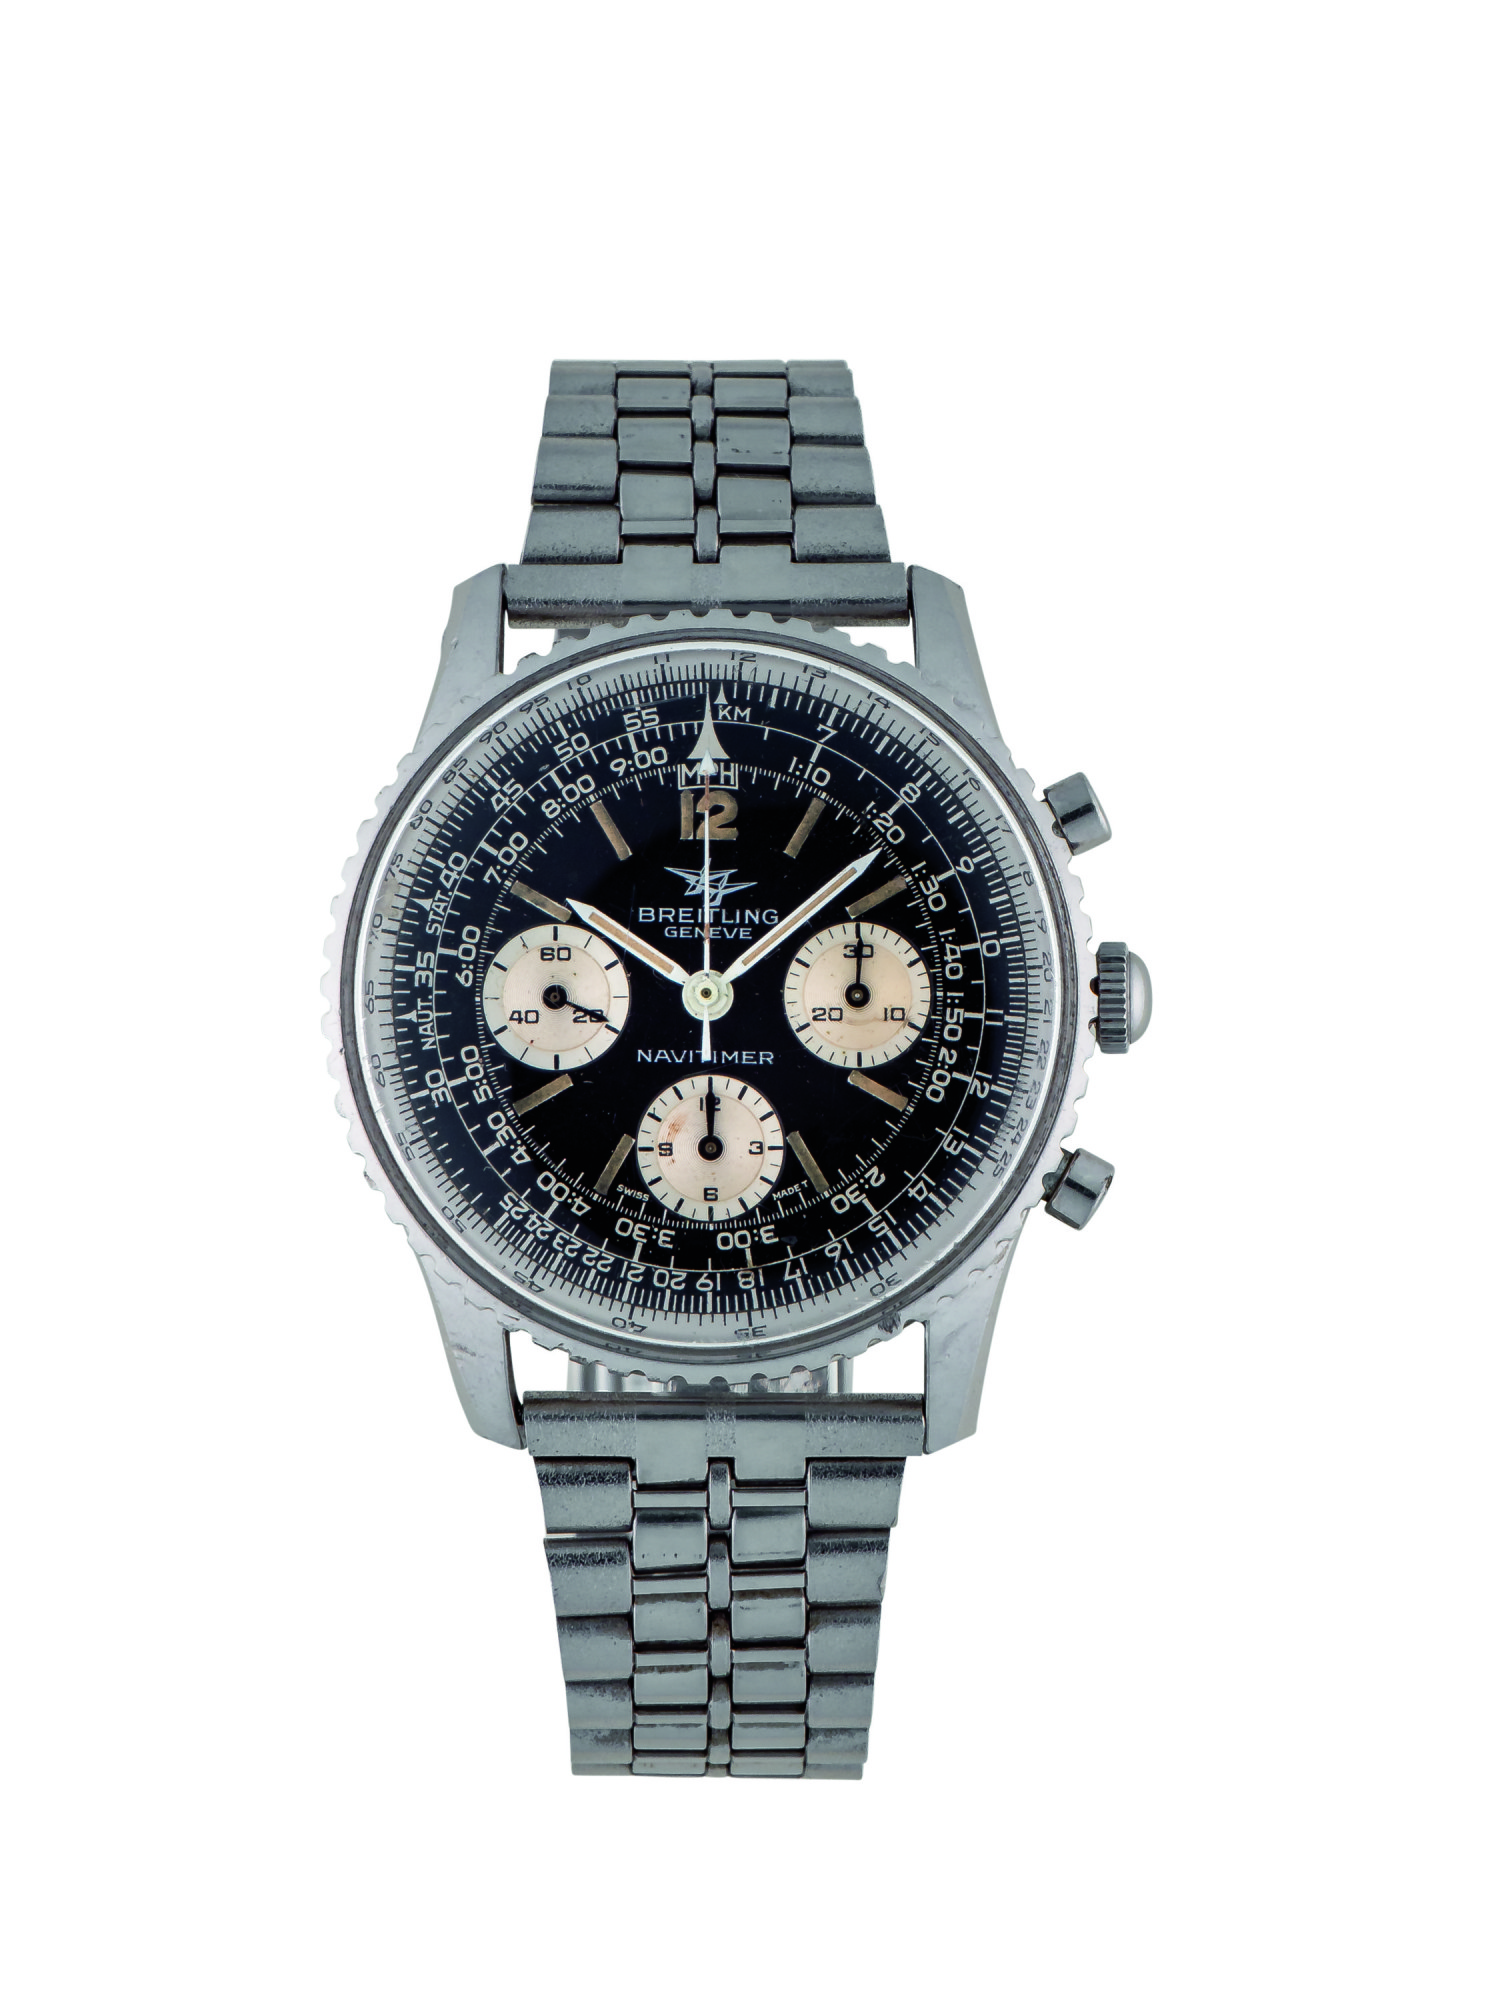 BREITLING   NAVITIMER, REF 806 STAINLESS STEEL CHRONOGRAPH WRISTWATCH WITH BRACELET CIRCA 1960